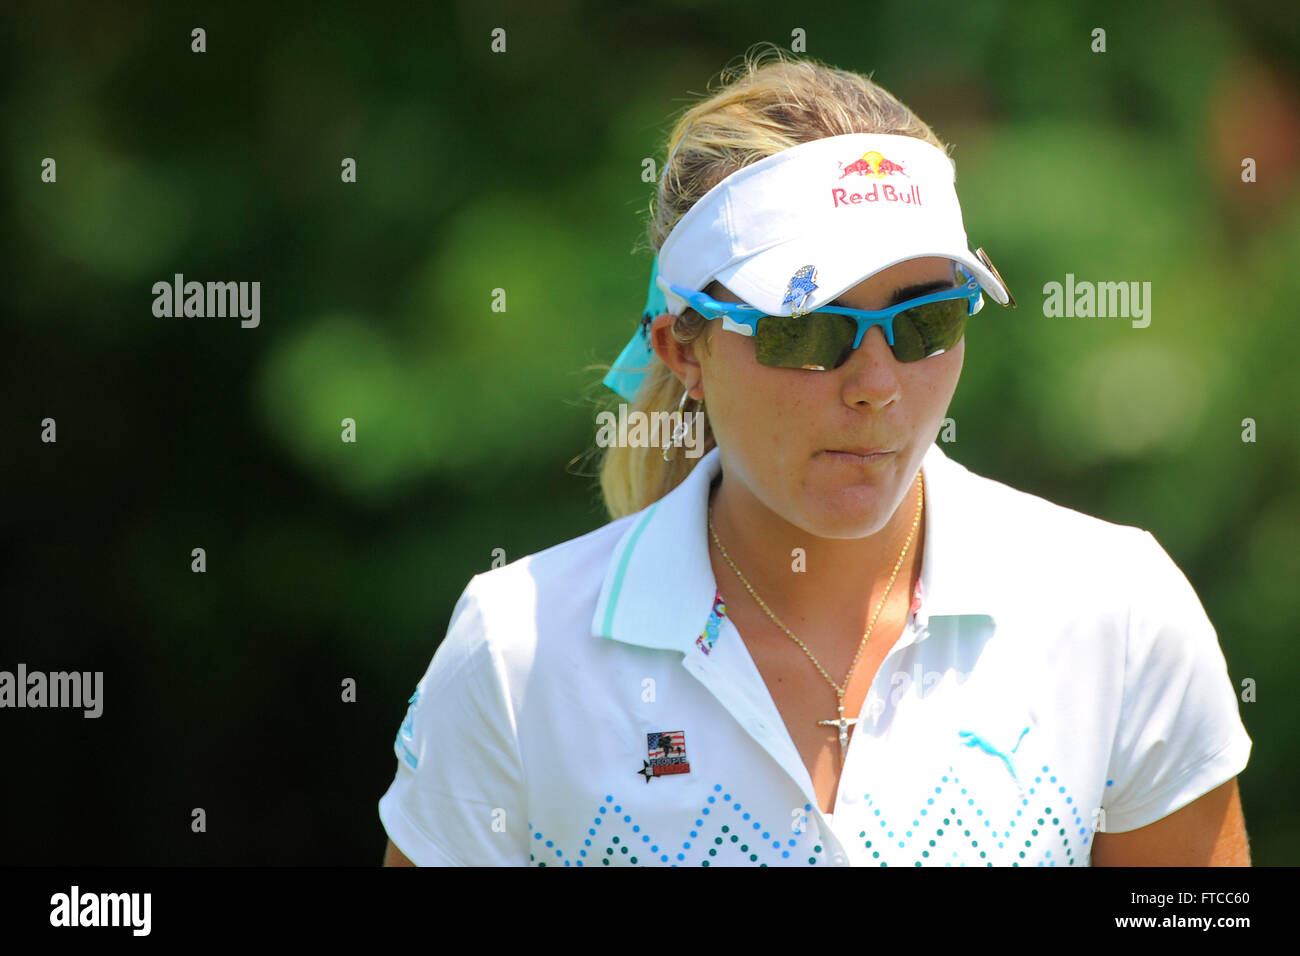 Kohler, Wis, USA. 5th July, 2012. Lexi Thompson during the first ...